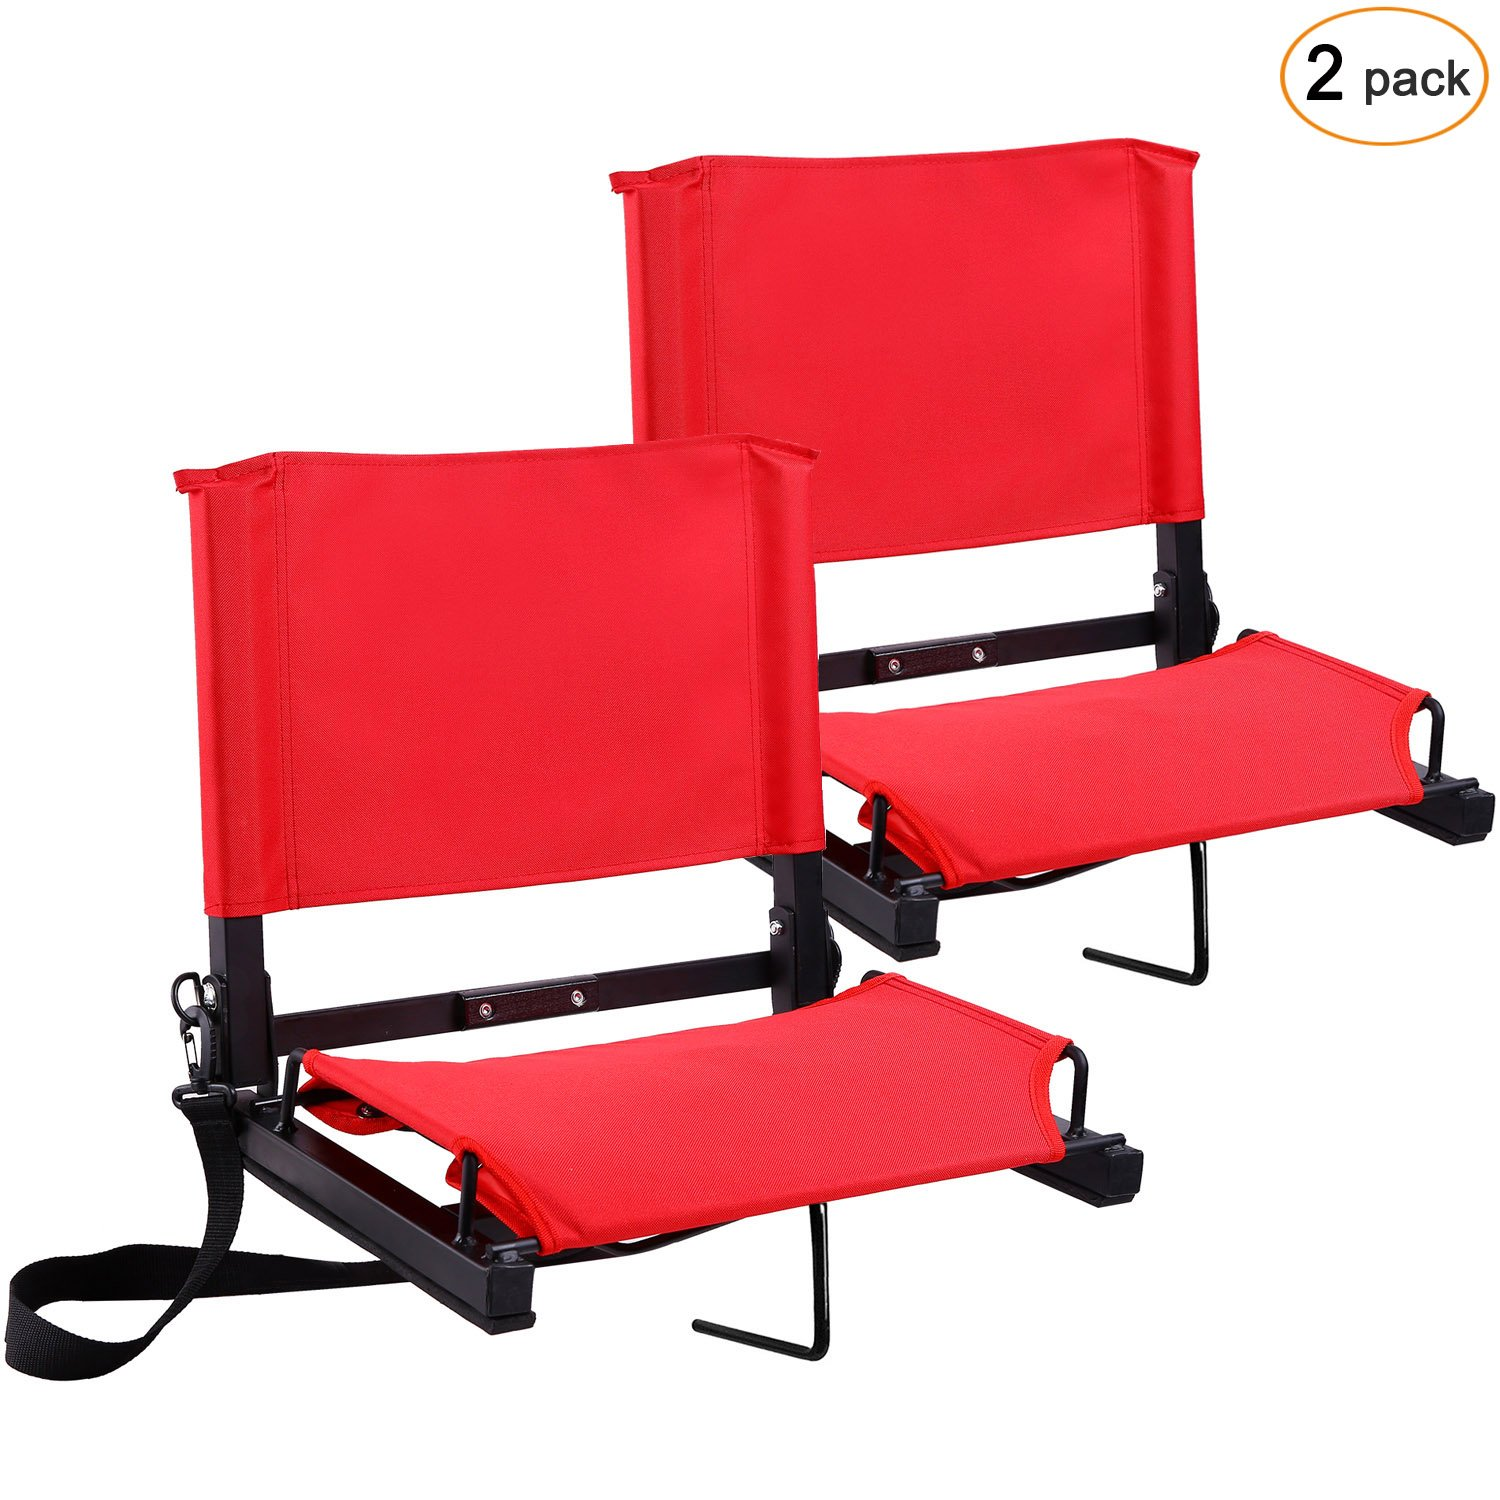 Ohuhu Stadium Chairs/Stadium Seats Bleacher Seats with Bungee Cord Cushion and Comfortable Backrest, Red 2-Pack by Ohuhu